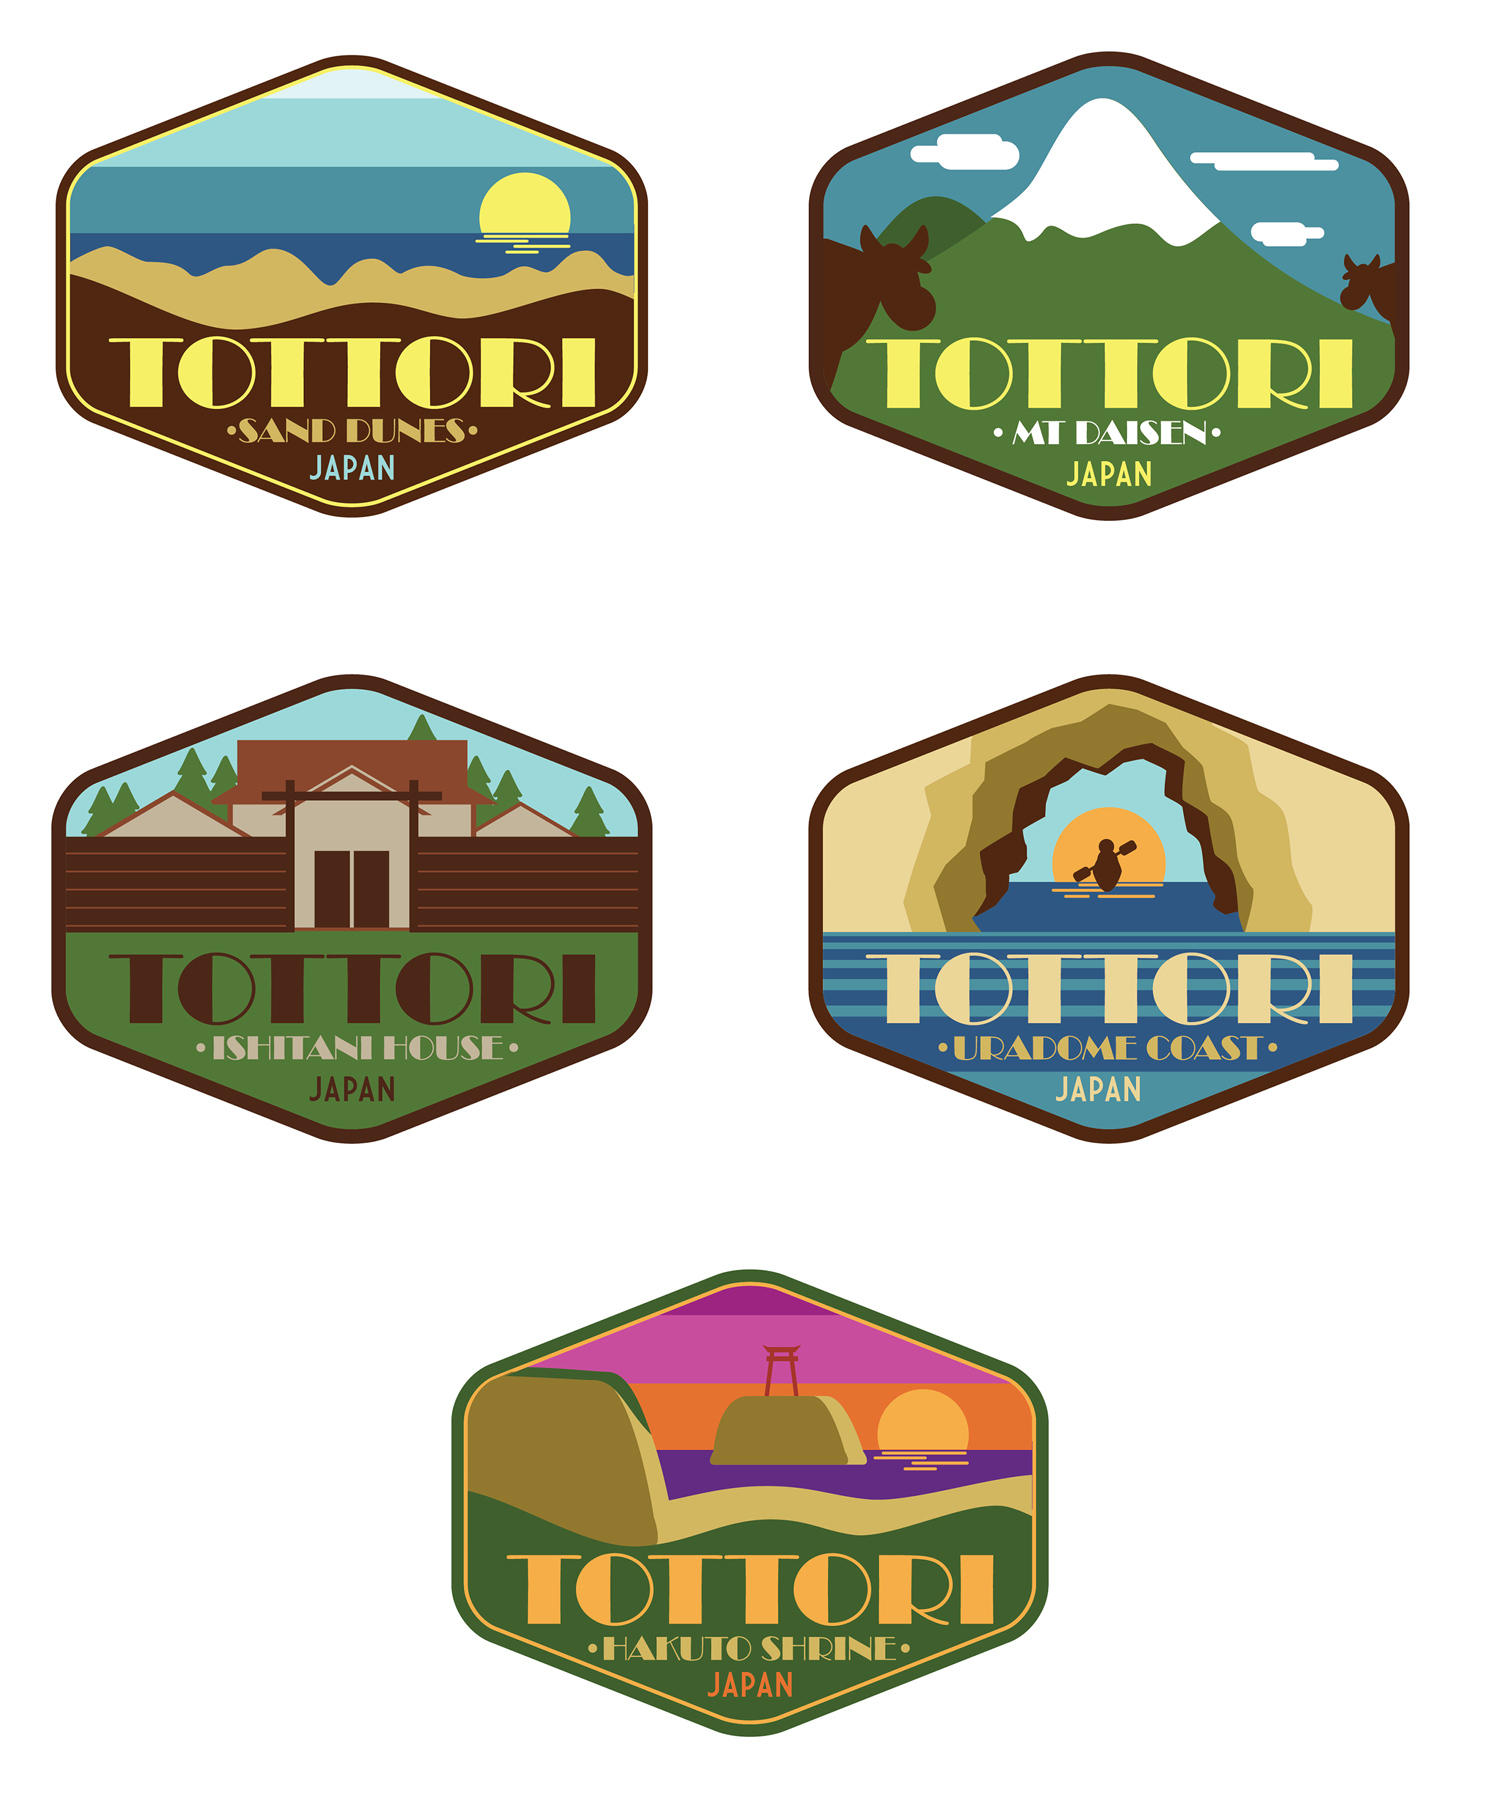 Tottori_Patches-ALL